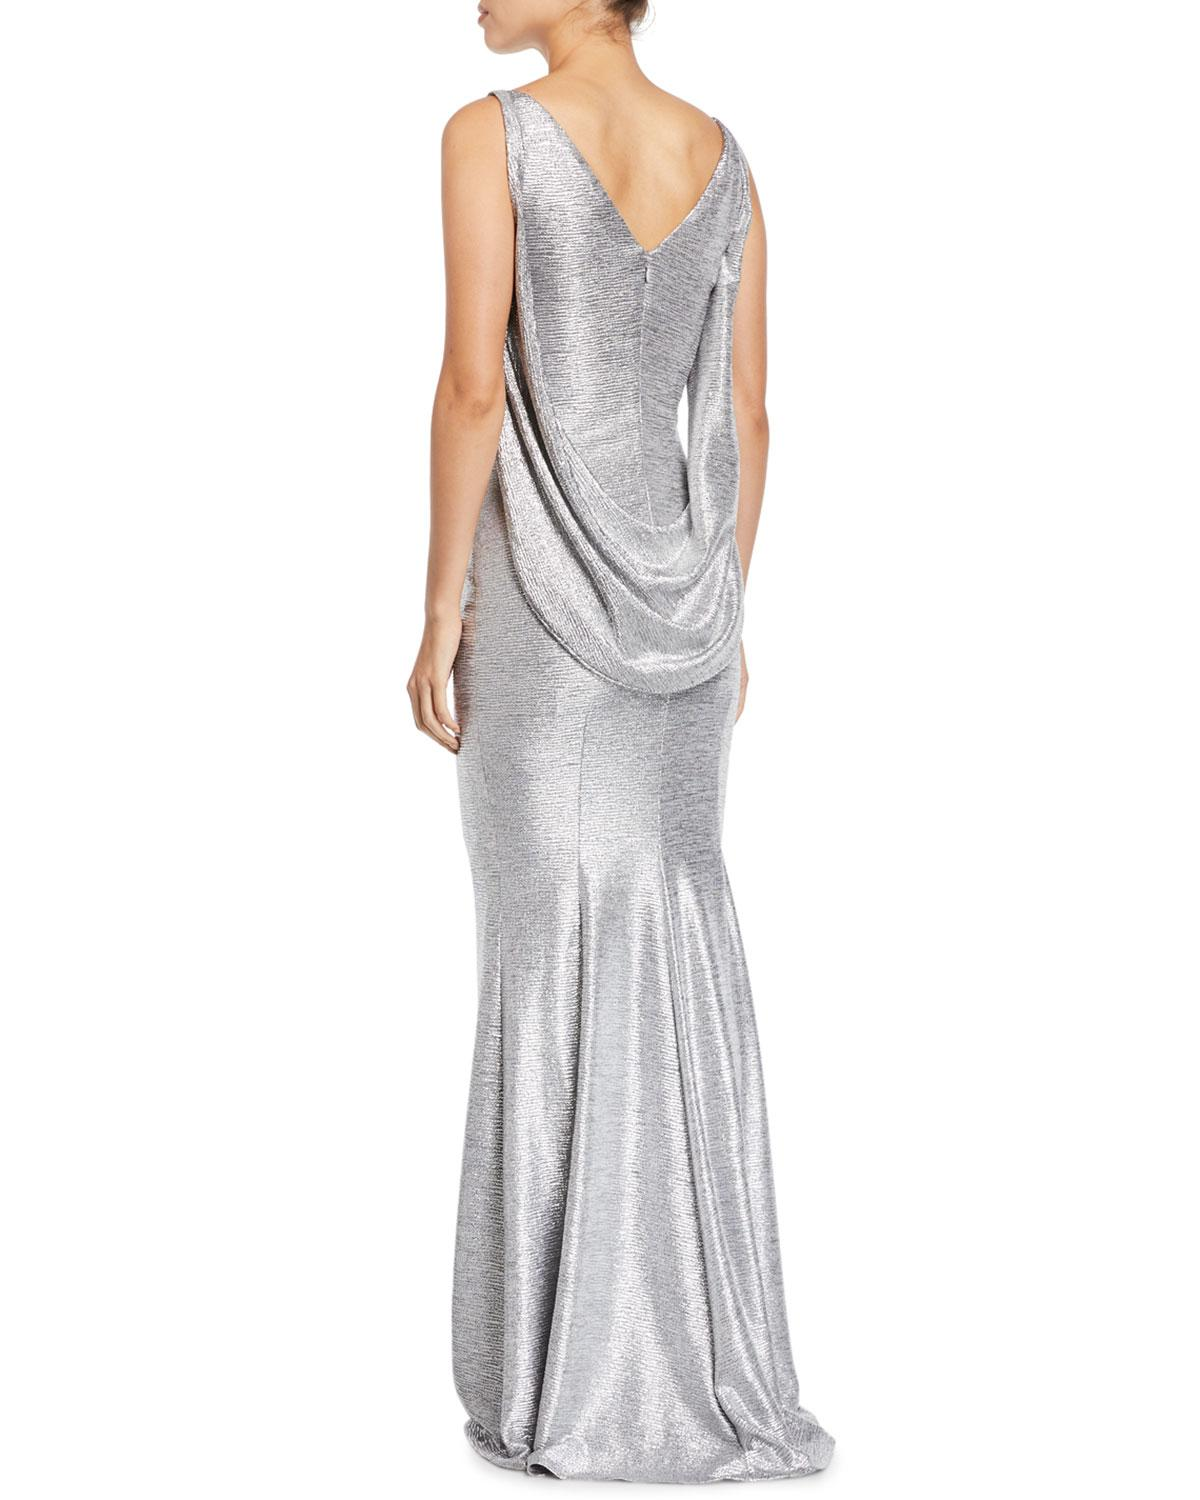 dcb285a2b7b ... Ponceau 8 Sash-back Boat-neck Metallic Trumpet Evening Gown -. View  fullscreen